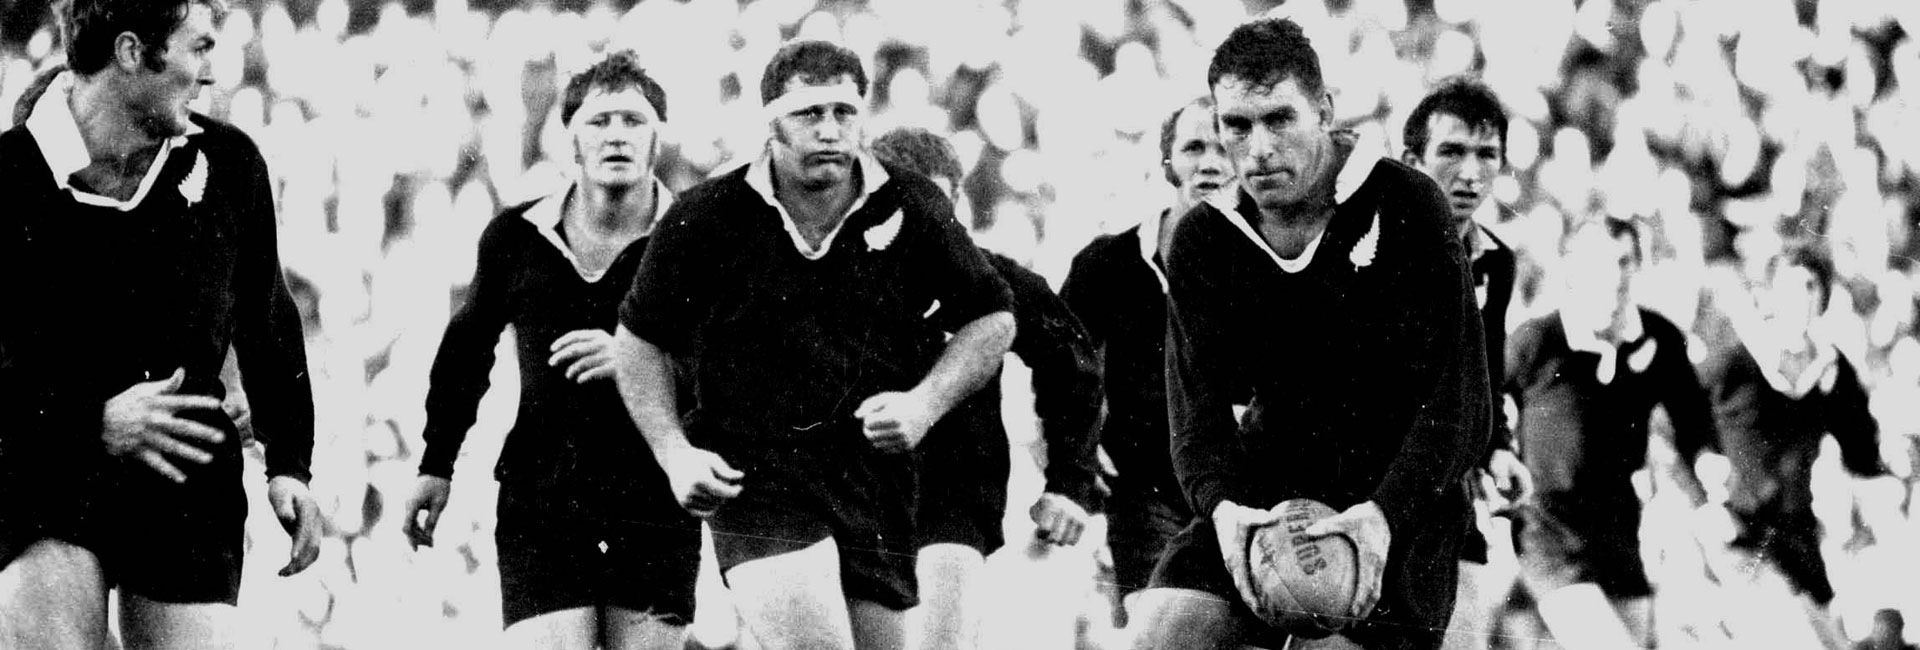 Colin Meads playing for the All Blacks